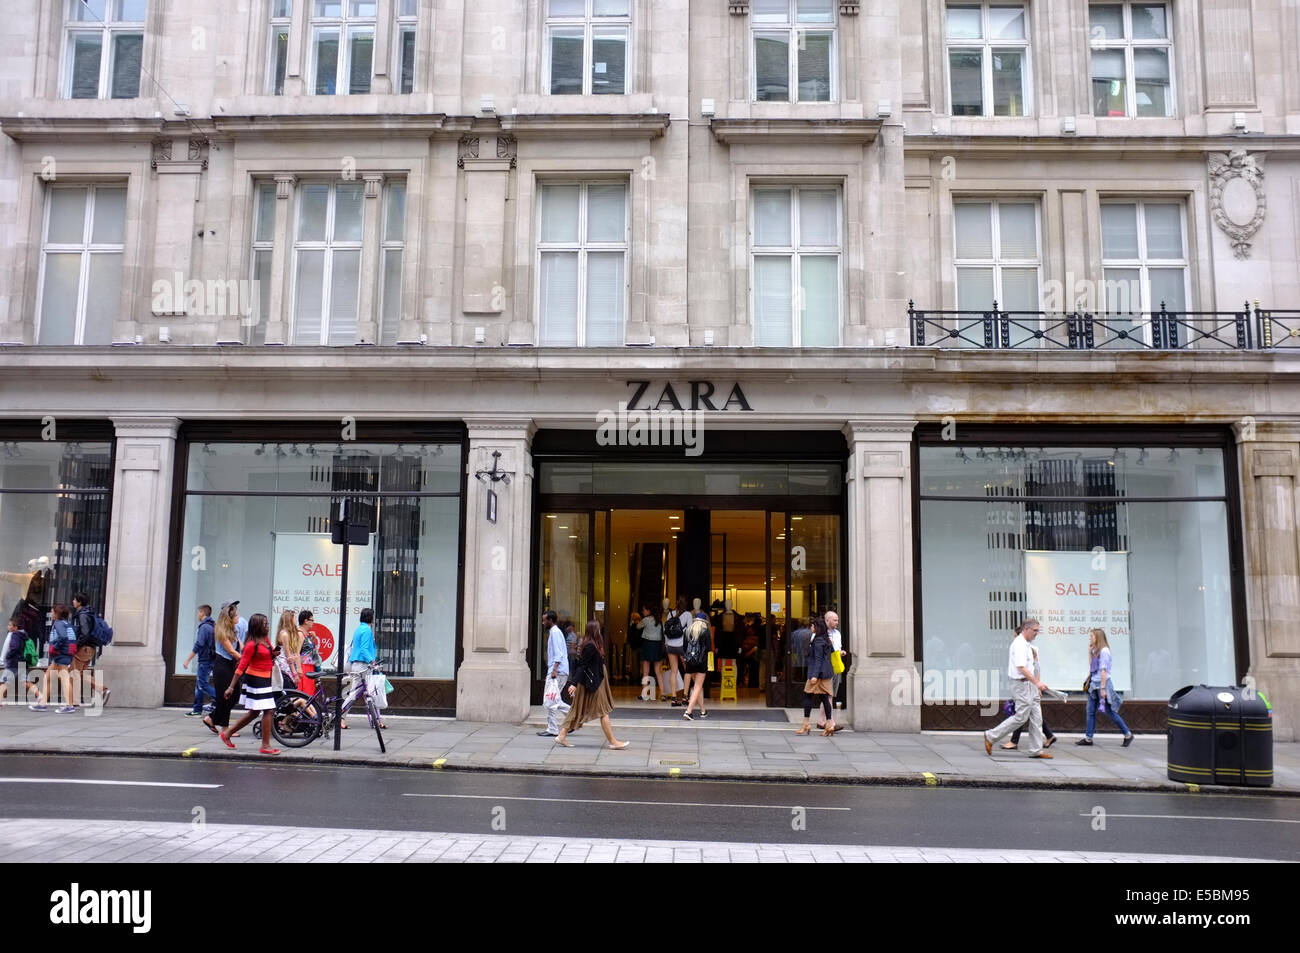 zara store on regent street london stock photo royalty free image 72172161 alamy. Black Bedroom Furniture Sets. Home Design Ideas